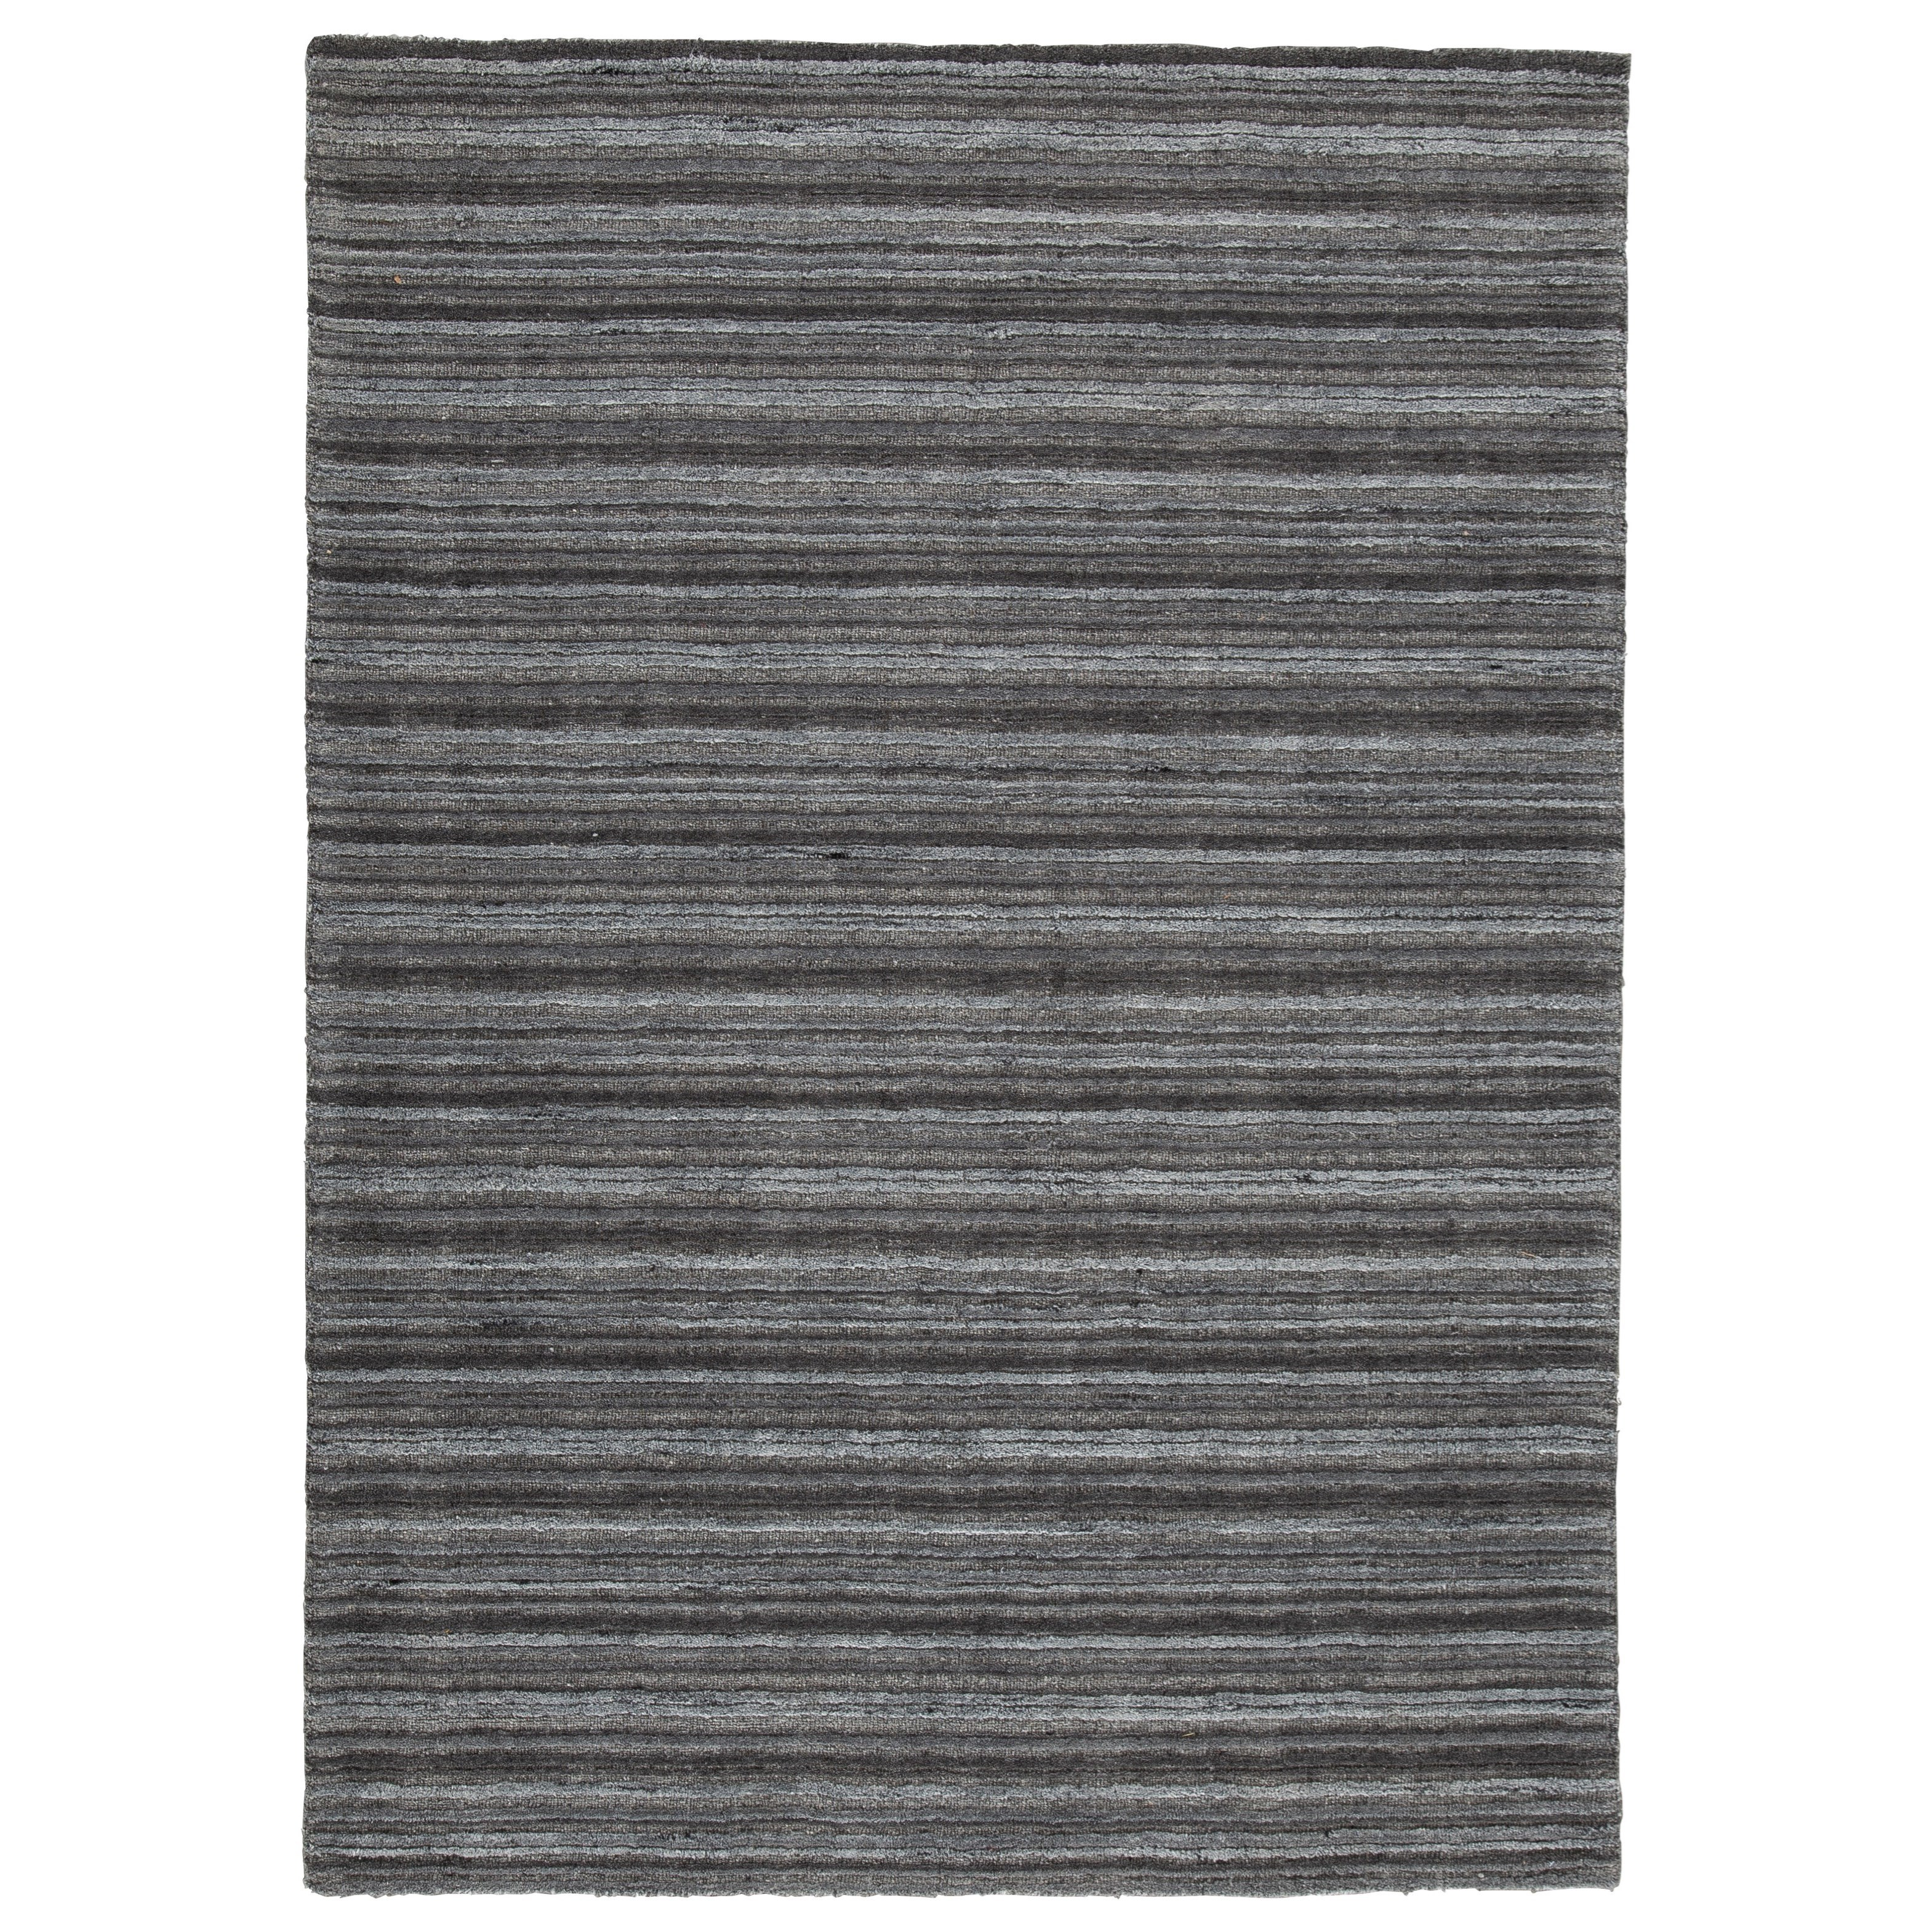 Casual Area Rugs Kellsey Black/Charcoal Large Rug by Signature Design by Ashley at Northeast Factory Direct